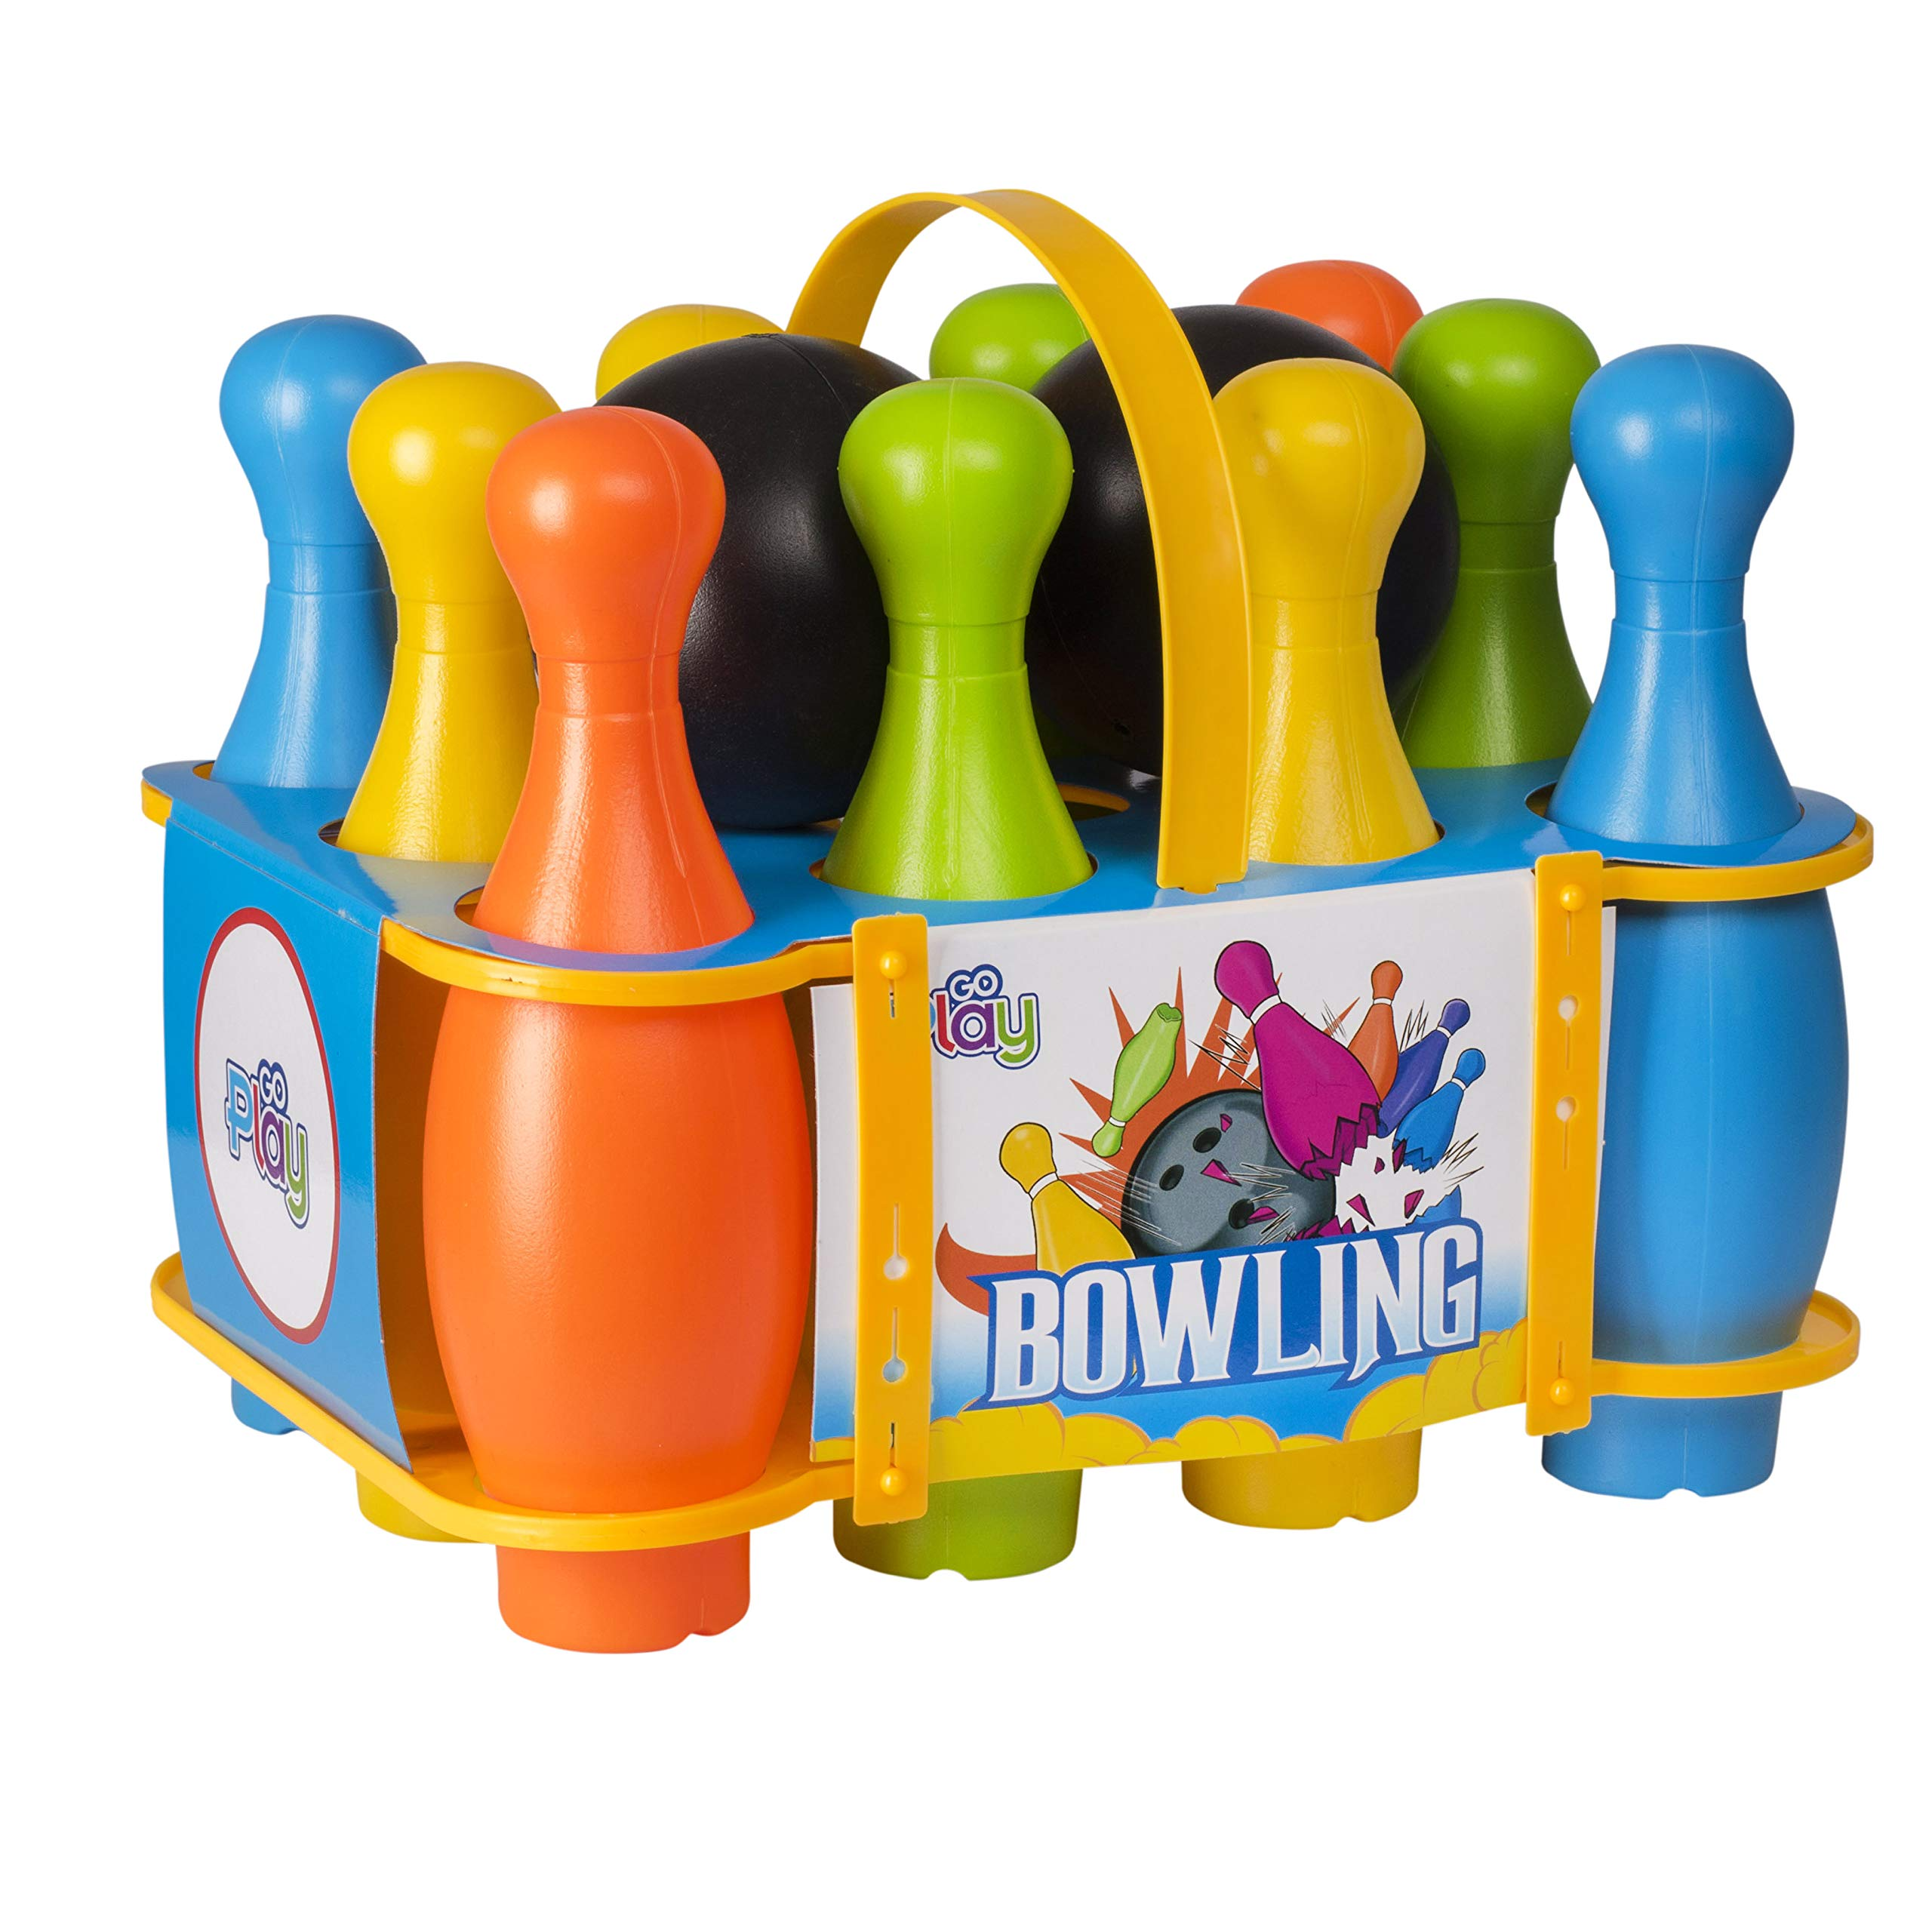 Go Play Soft Bowling Set for Kids - 12-Piece Game with Colorful Numbered Pins Flexible Toy Indoor or Outdoor Walmart.com